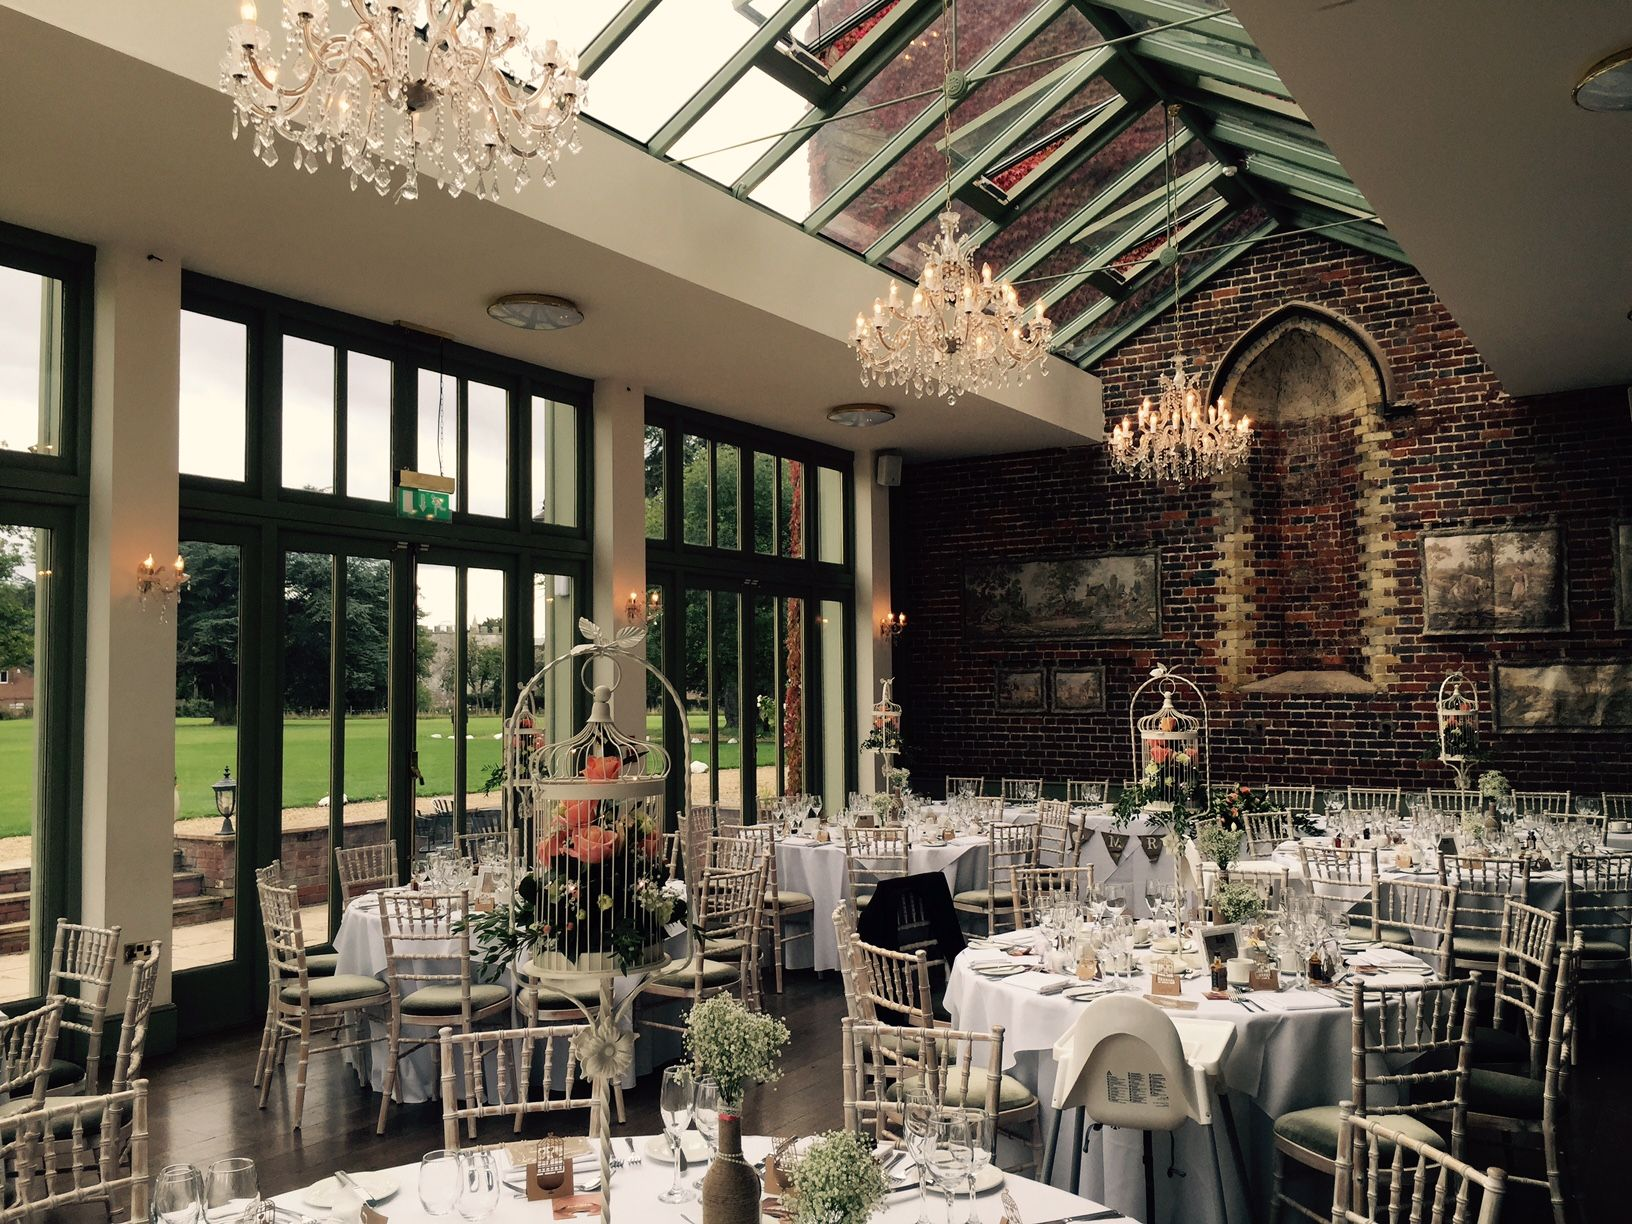 The Beautiful Offley Place Hotel Is An Elegant Country House Wedding Venue In Hitchin Hertfordshire